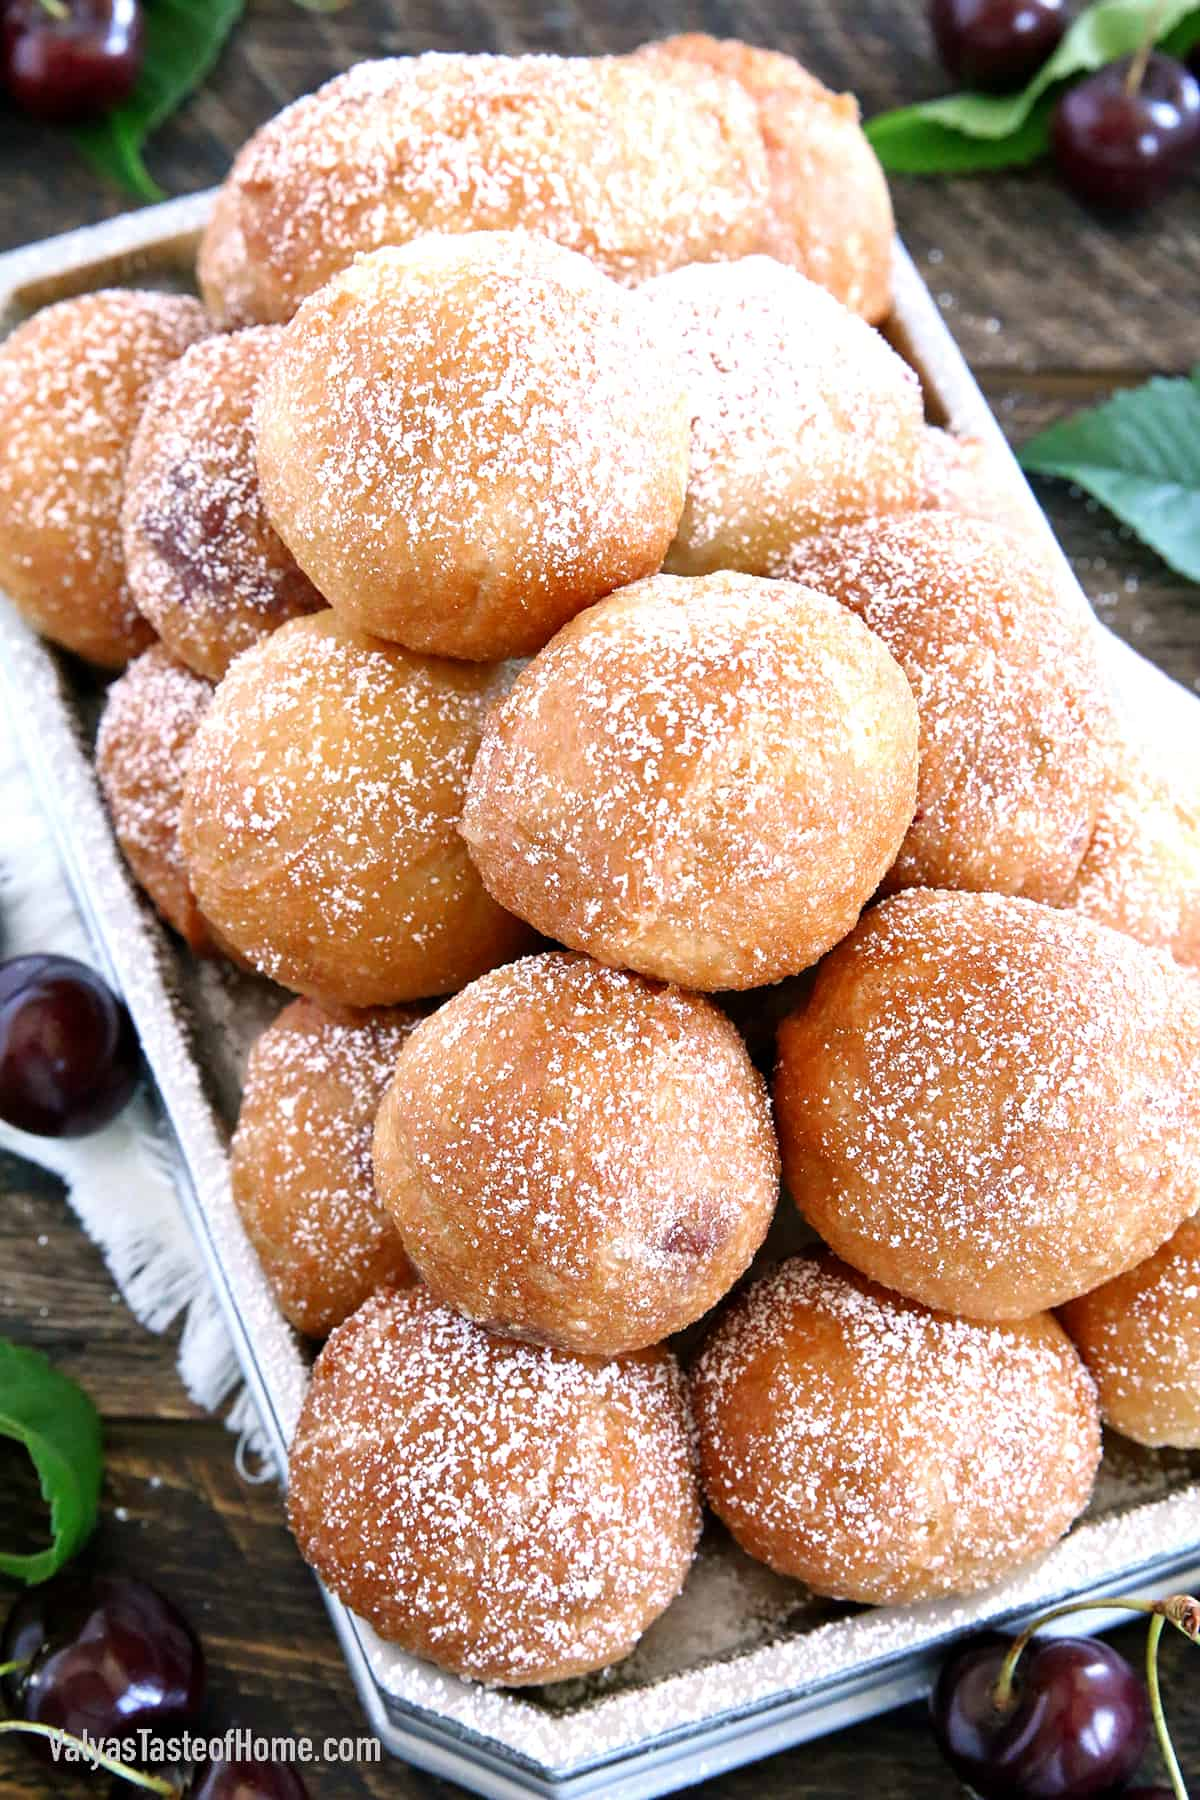 I'm not a big fan of frying and try to avoid it as much as possible. I have very few recipes that require frying. However, this Cherry Filled Donut Holes (Ponchiki) recipe is absolutely worth it.